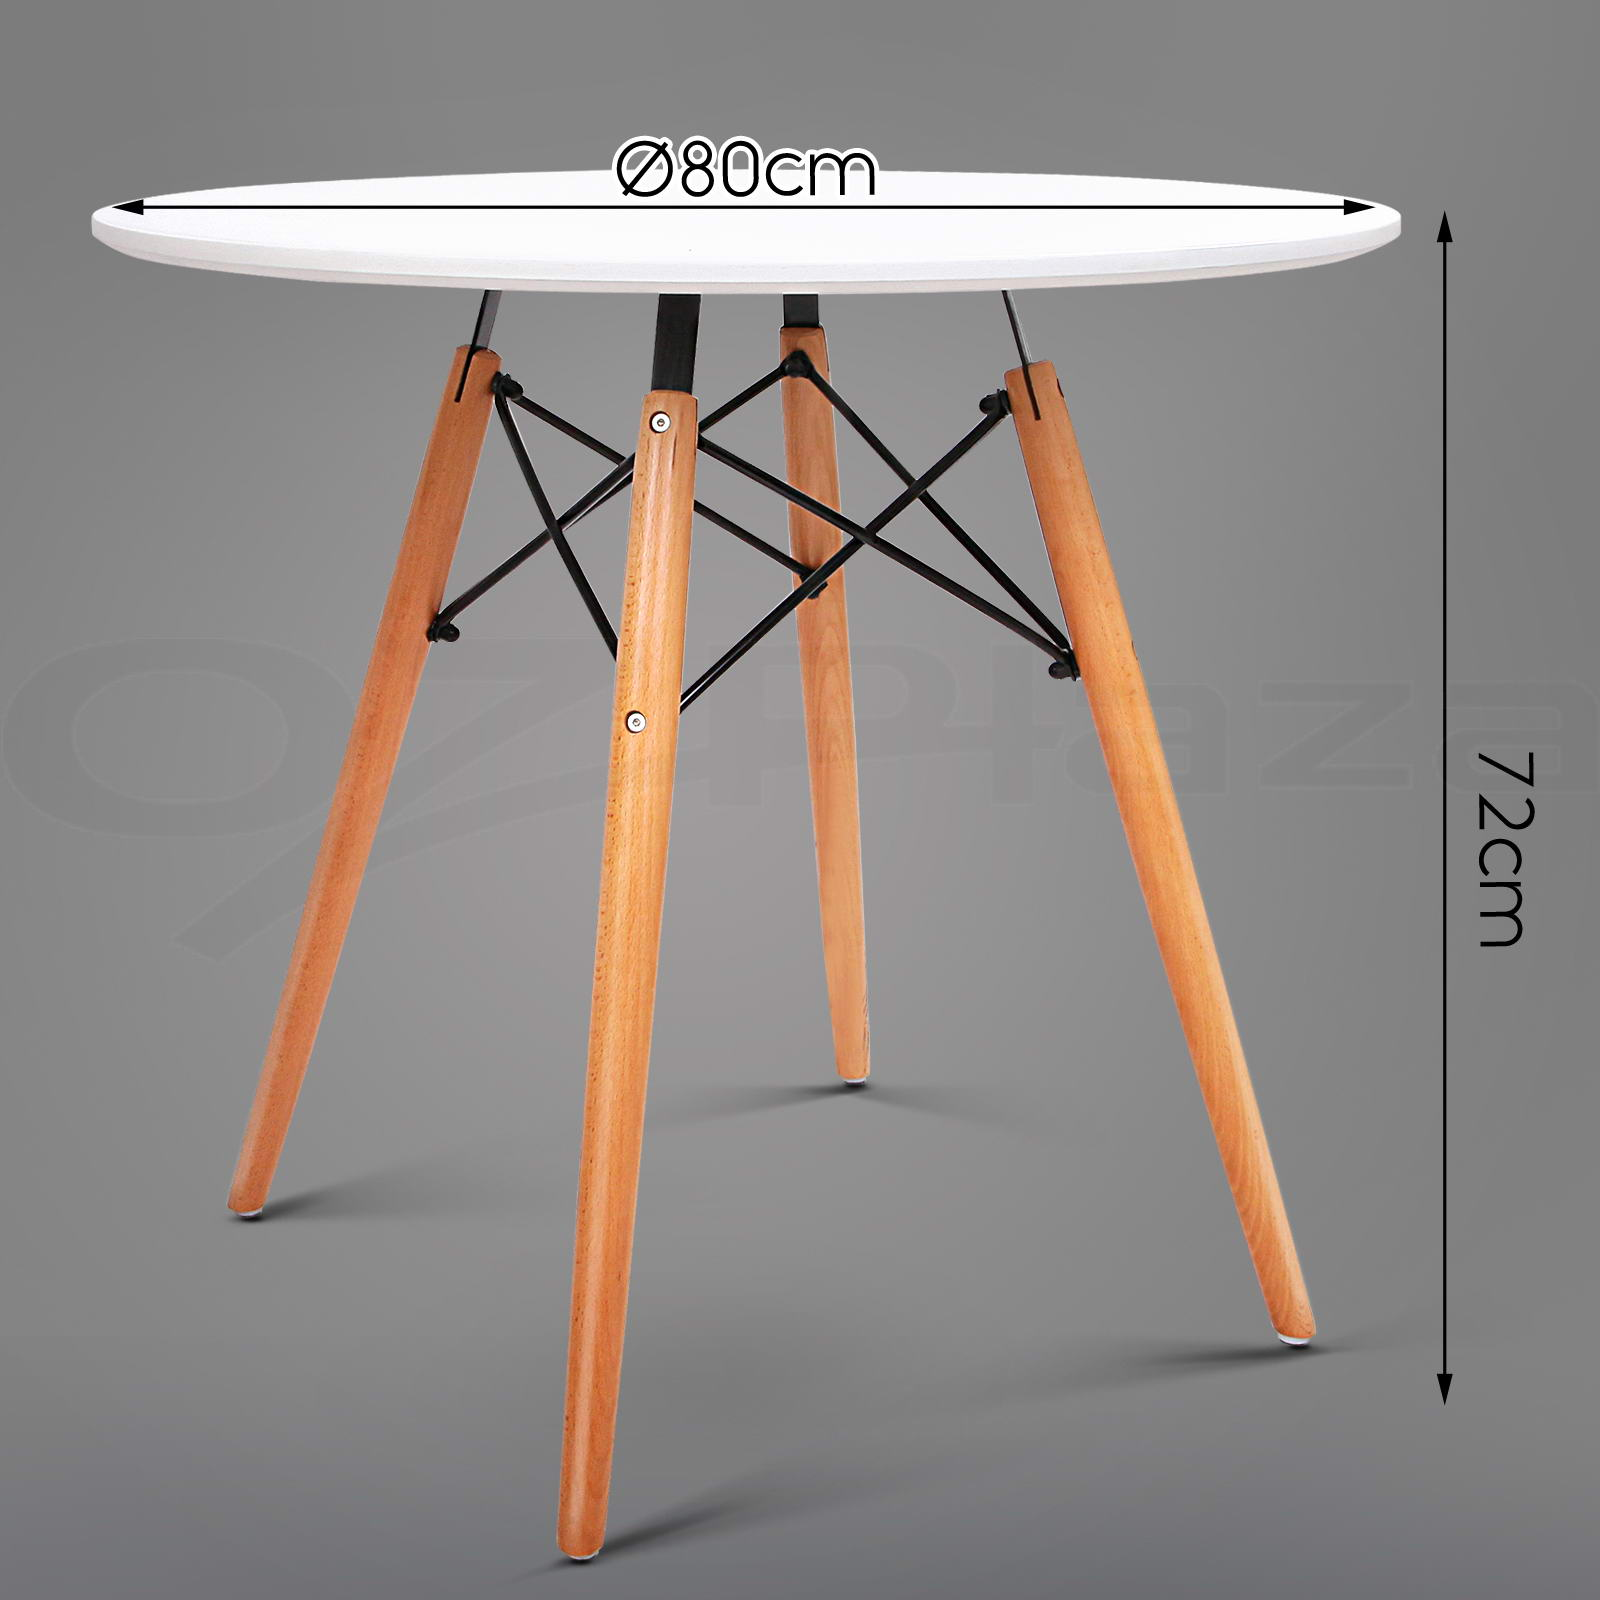 Replica eames dsw eiffel dining table kitchen caf coffee for Eames stuhl replica deutschland